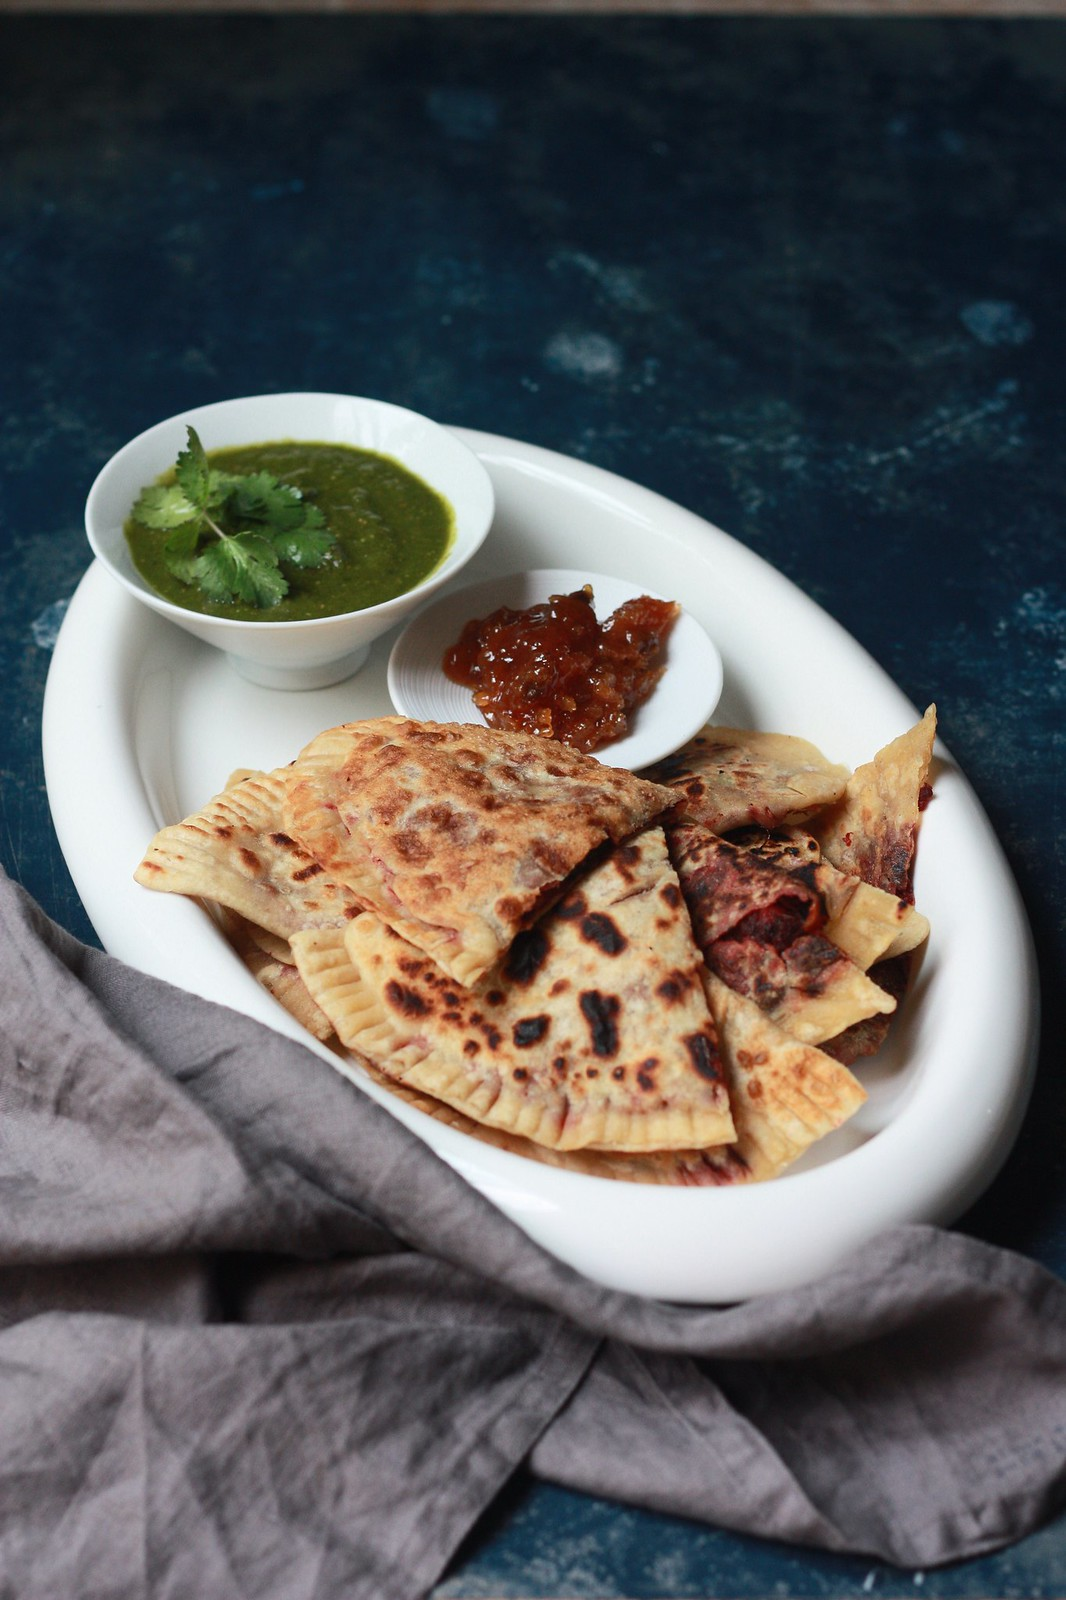 Beet Lifafa(Envelope) Parathas with Apple Cilantro Chutney